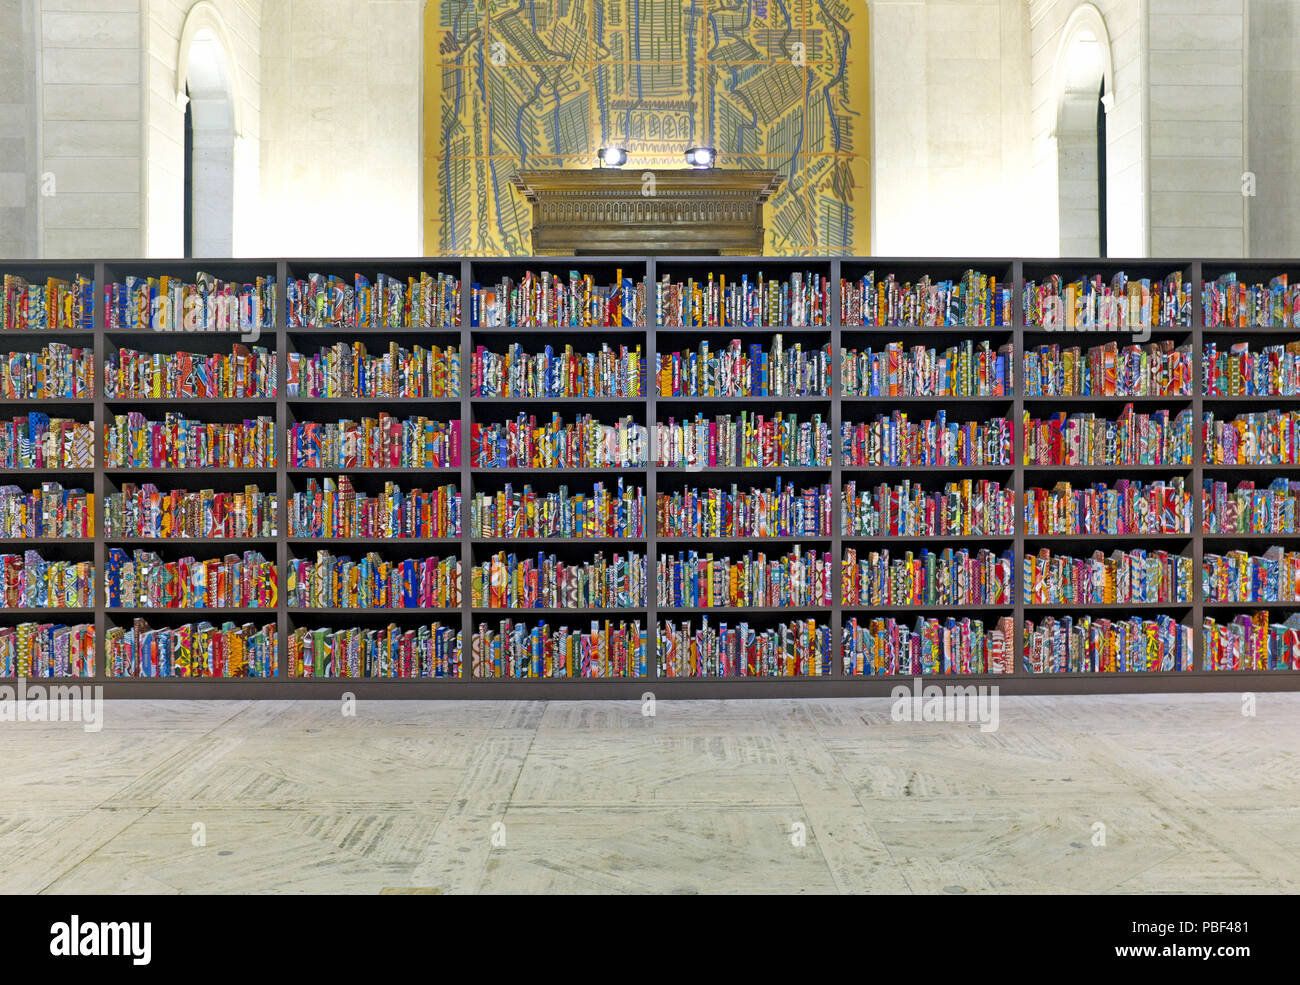 The American Library art installation by Yinka Shonibare in Cleveland Public Library Brett Hall in Cleveland, Ohio, USA. - Stock Image